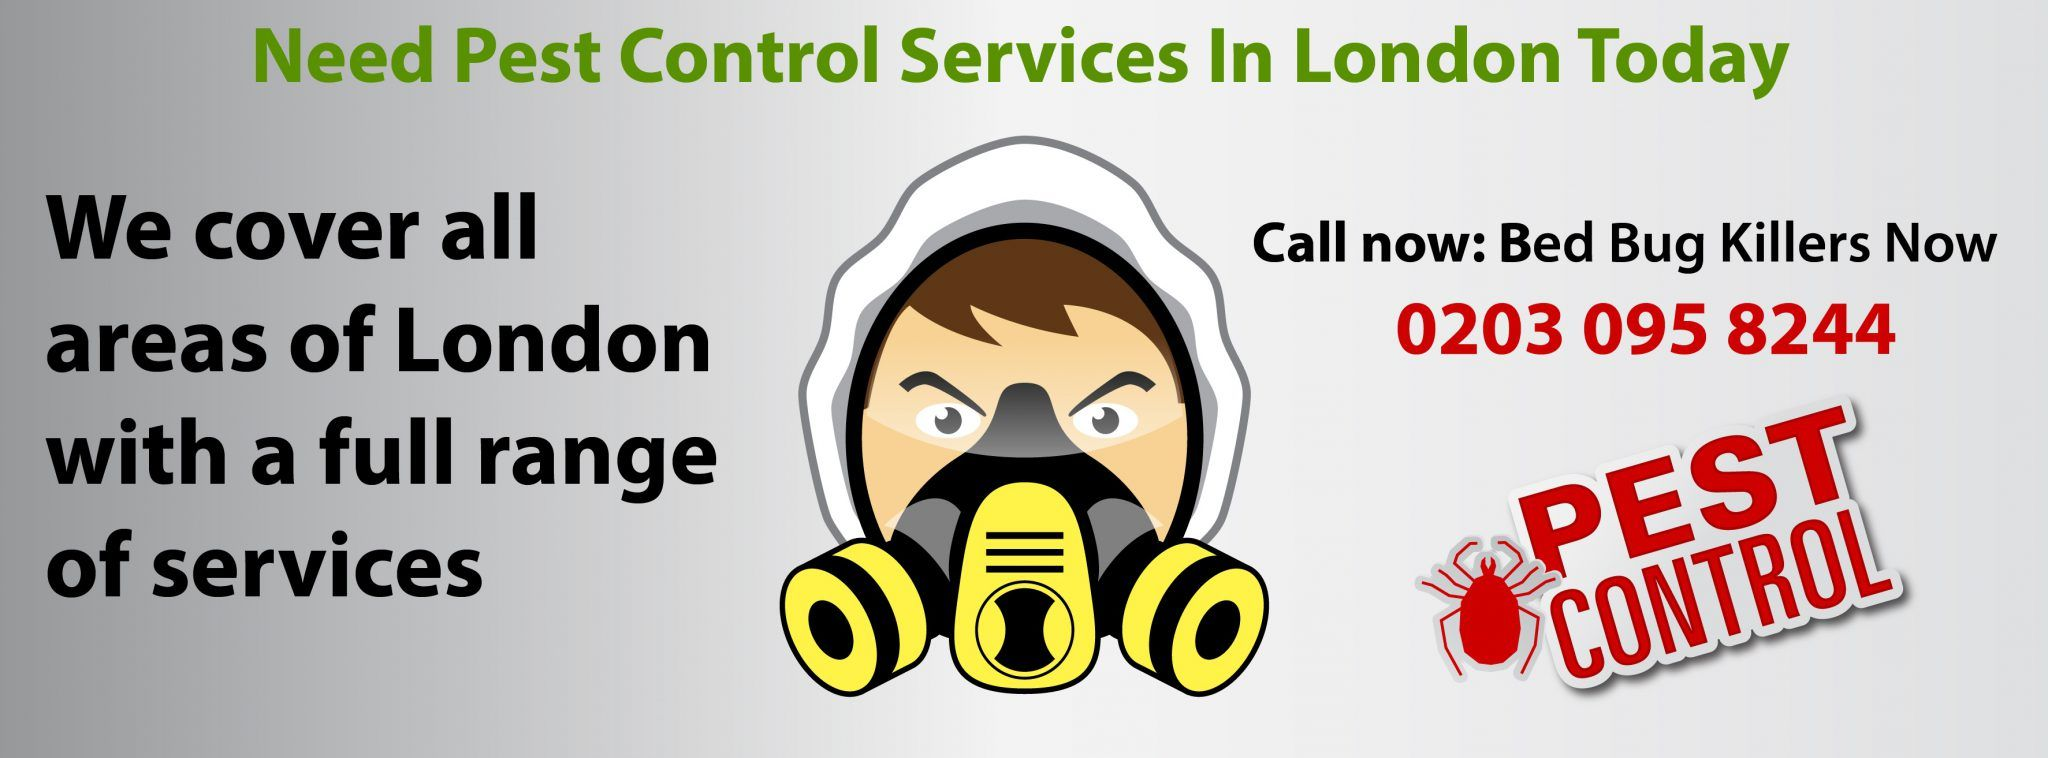 Pin By Bedbugskillers On Pest Control Services Pest Control Bed Bug Control Bees Wasps